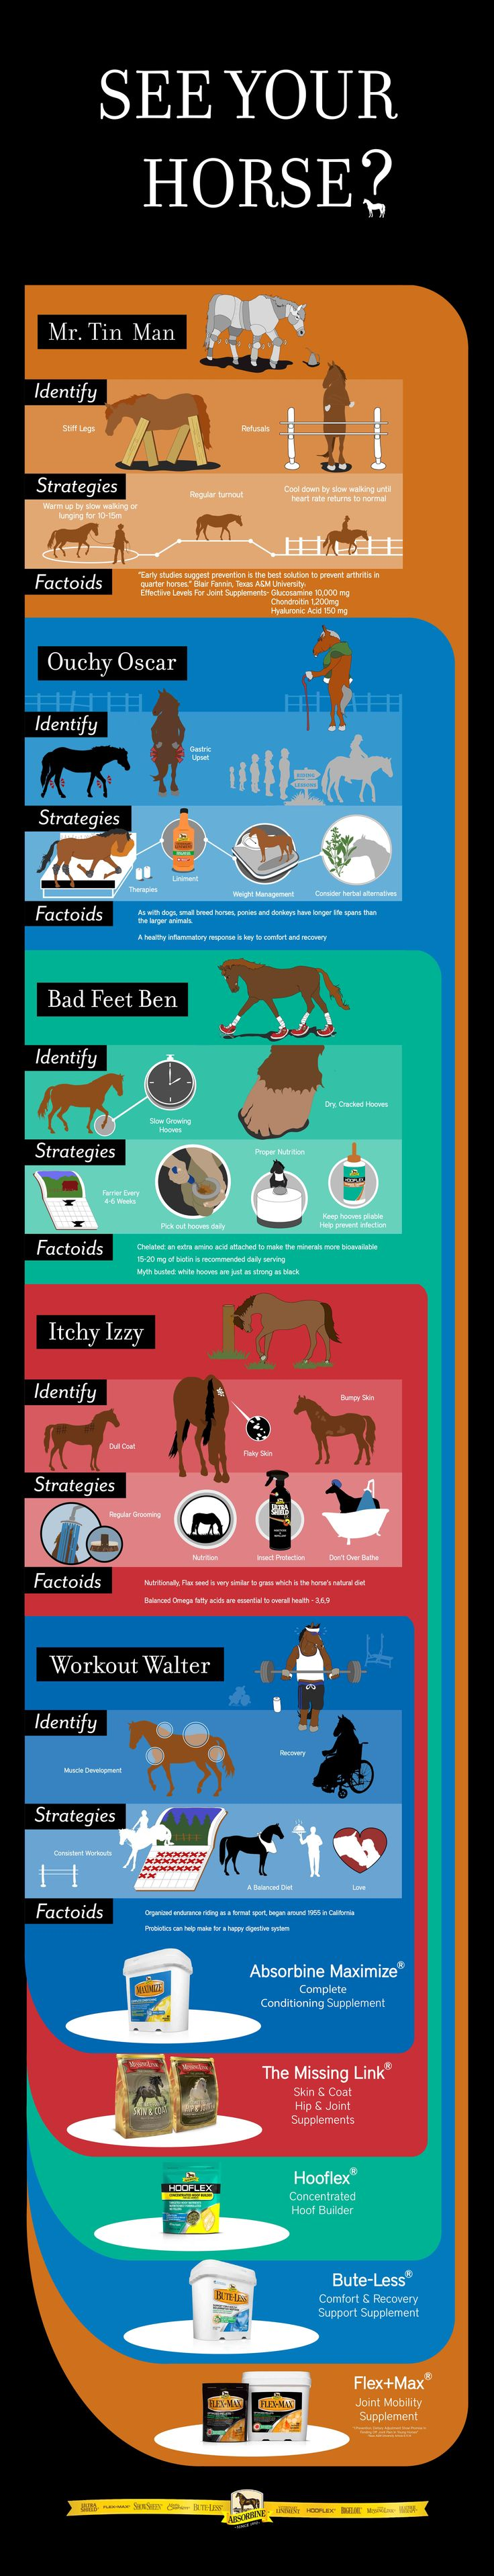 Supplements are a standard in everyone's horse care arsenal. Here is a tool to help you when selecting horse supplements!